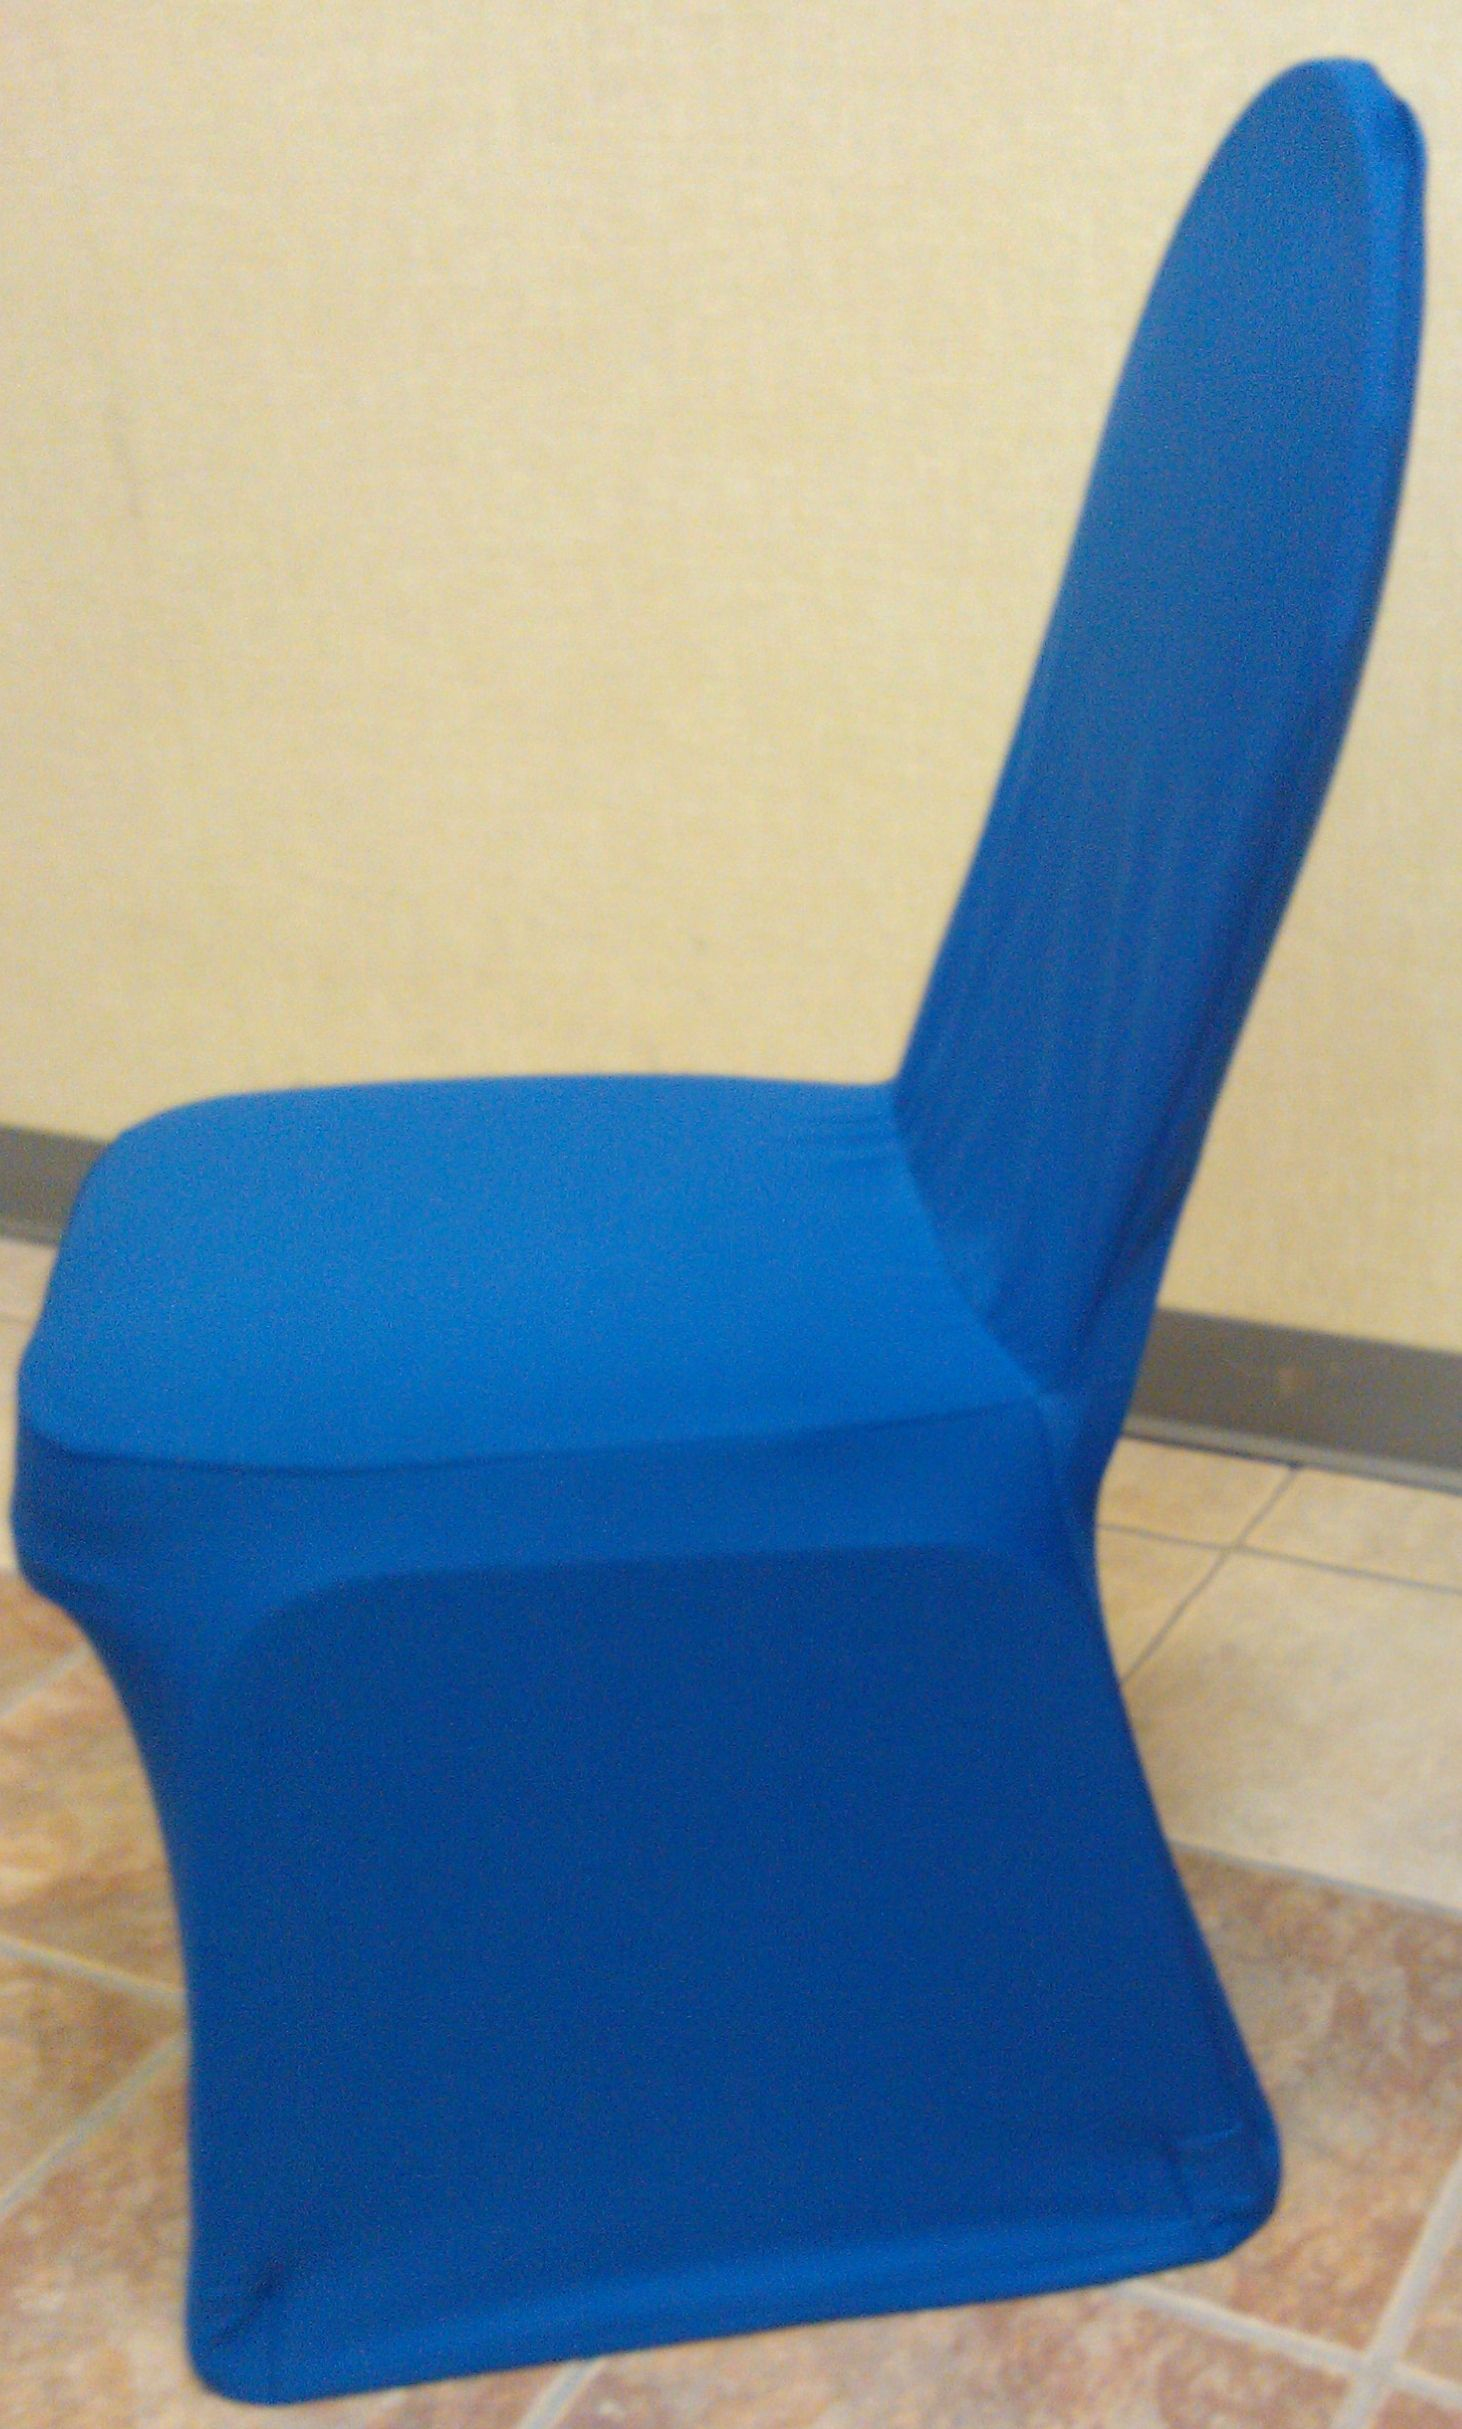 Blue Folding Chair Covers Modway Articulate Office Royal Spandex Banquet Cover